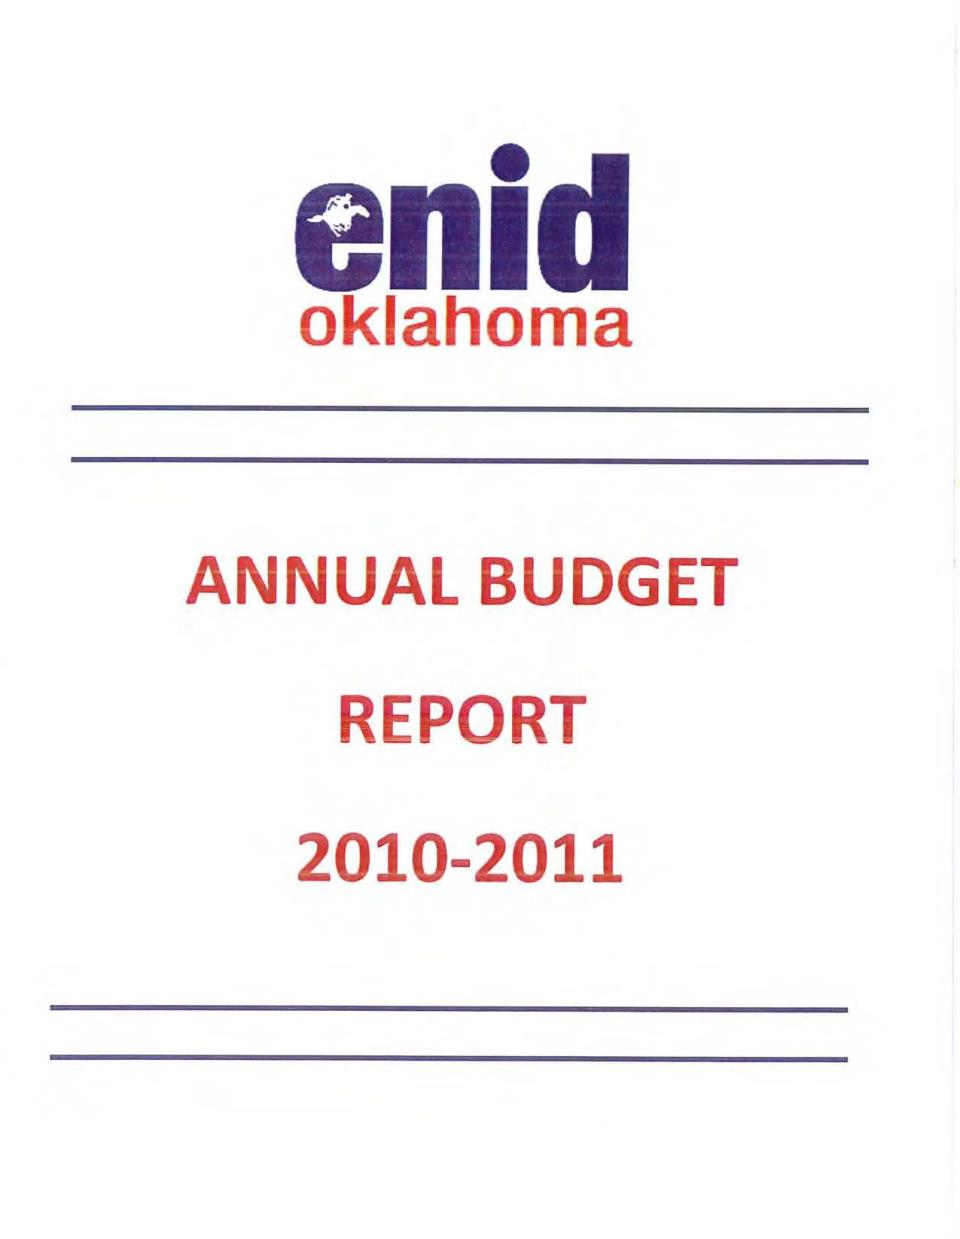 2010-2011 Budget Cover